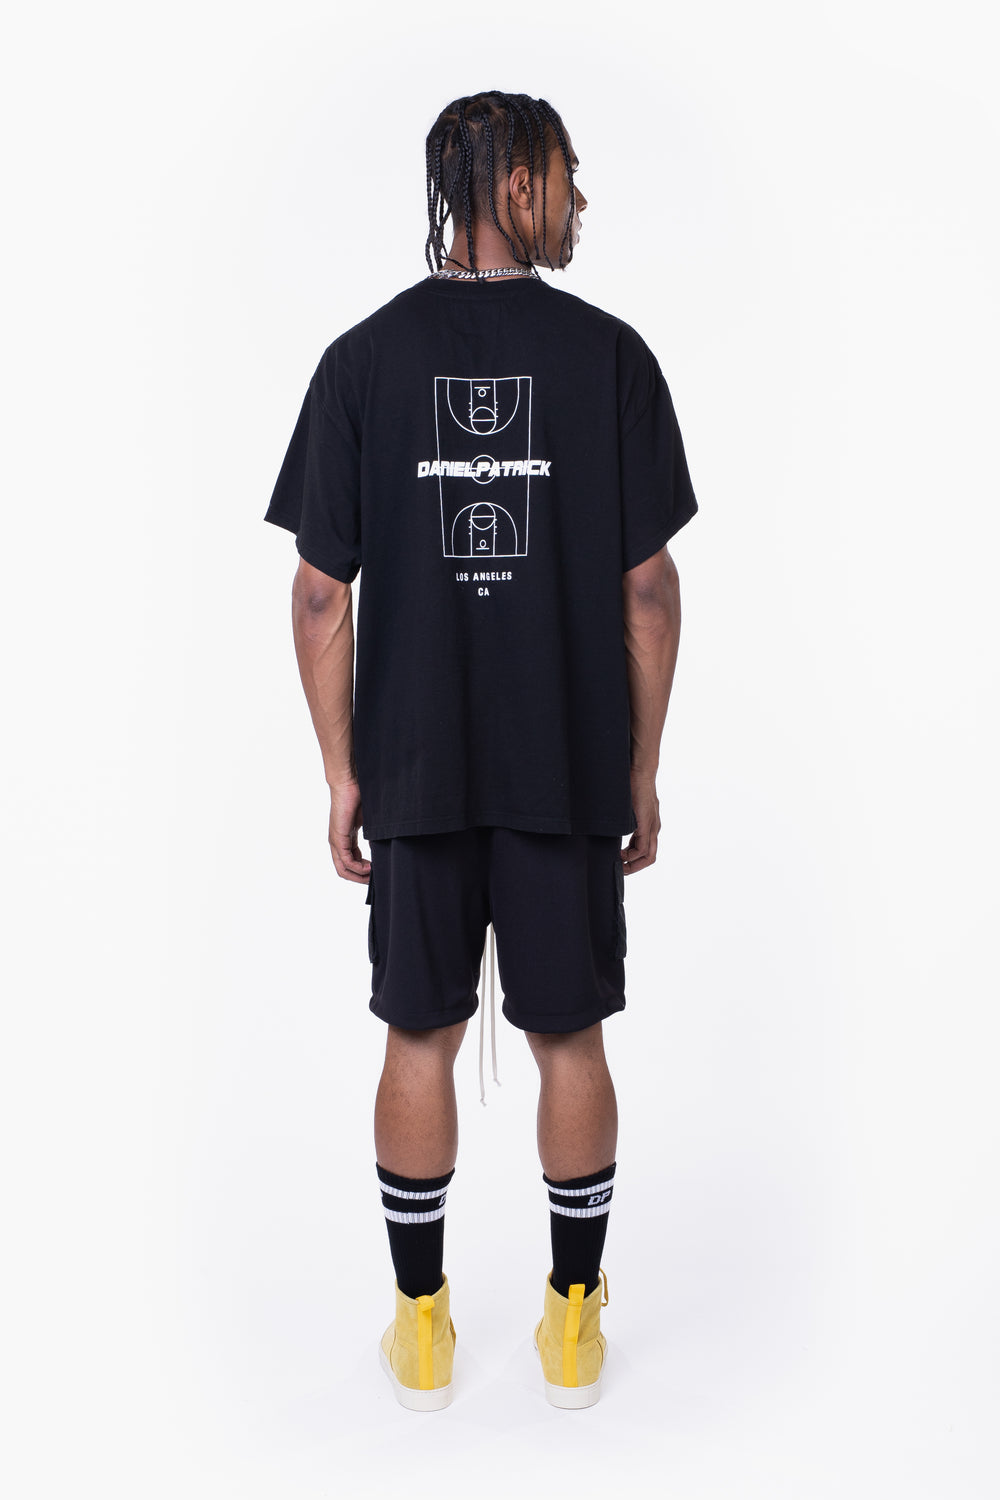 DP court tee / black